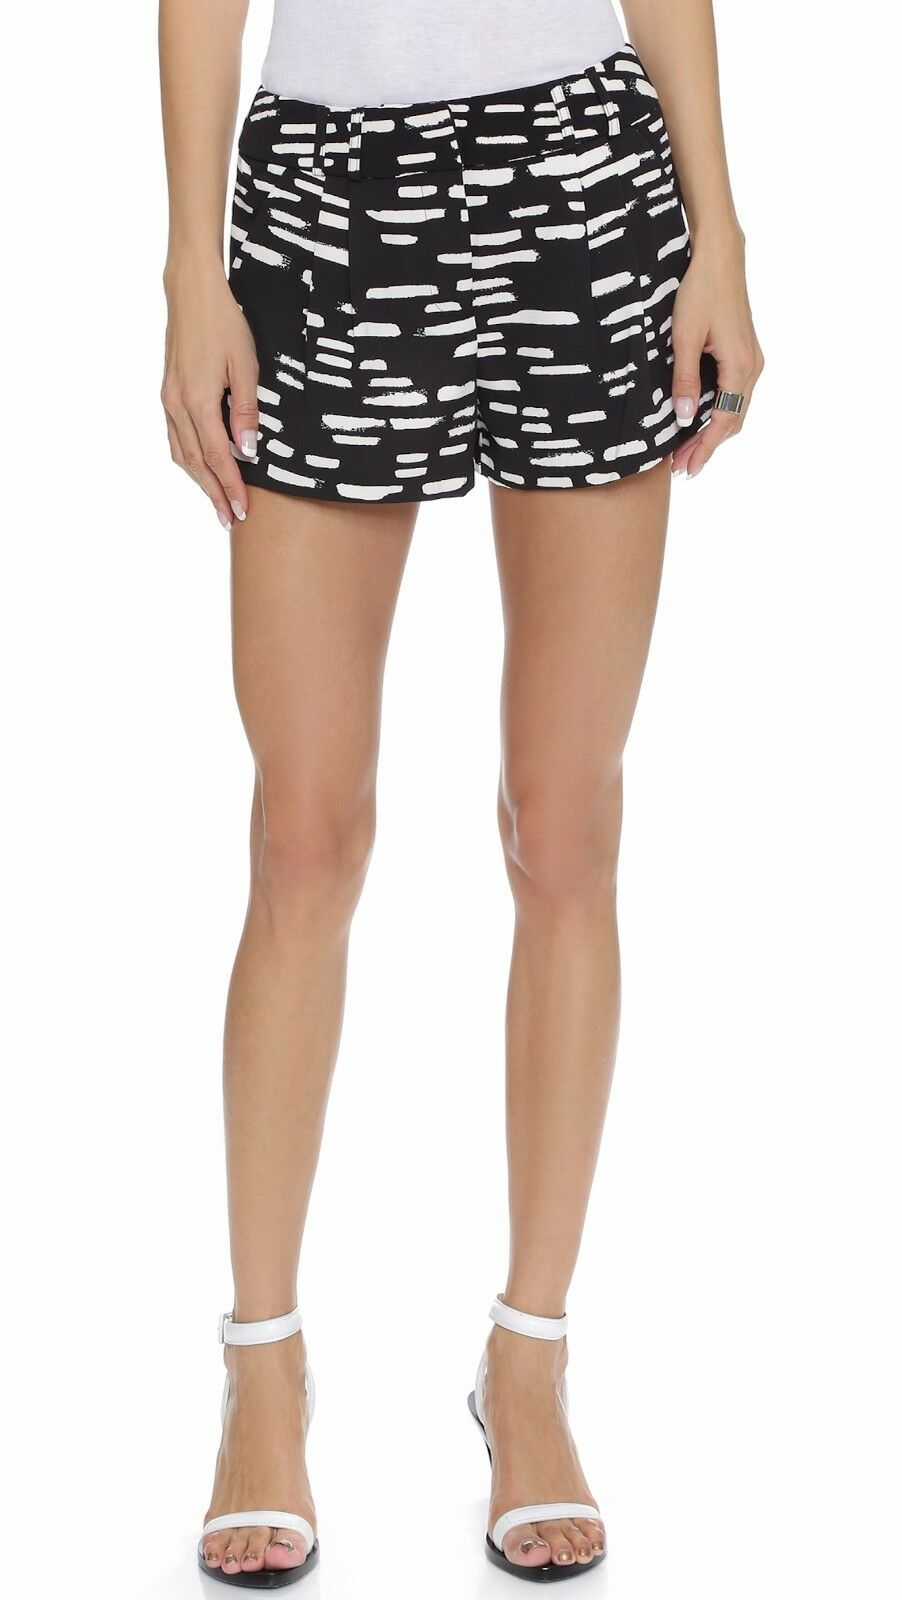 high-waisted shorts - Black C/Meo Collective g9swHmhm5S